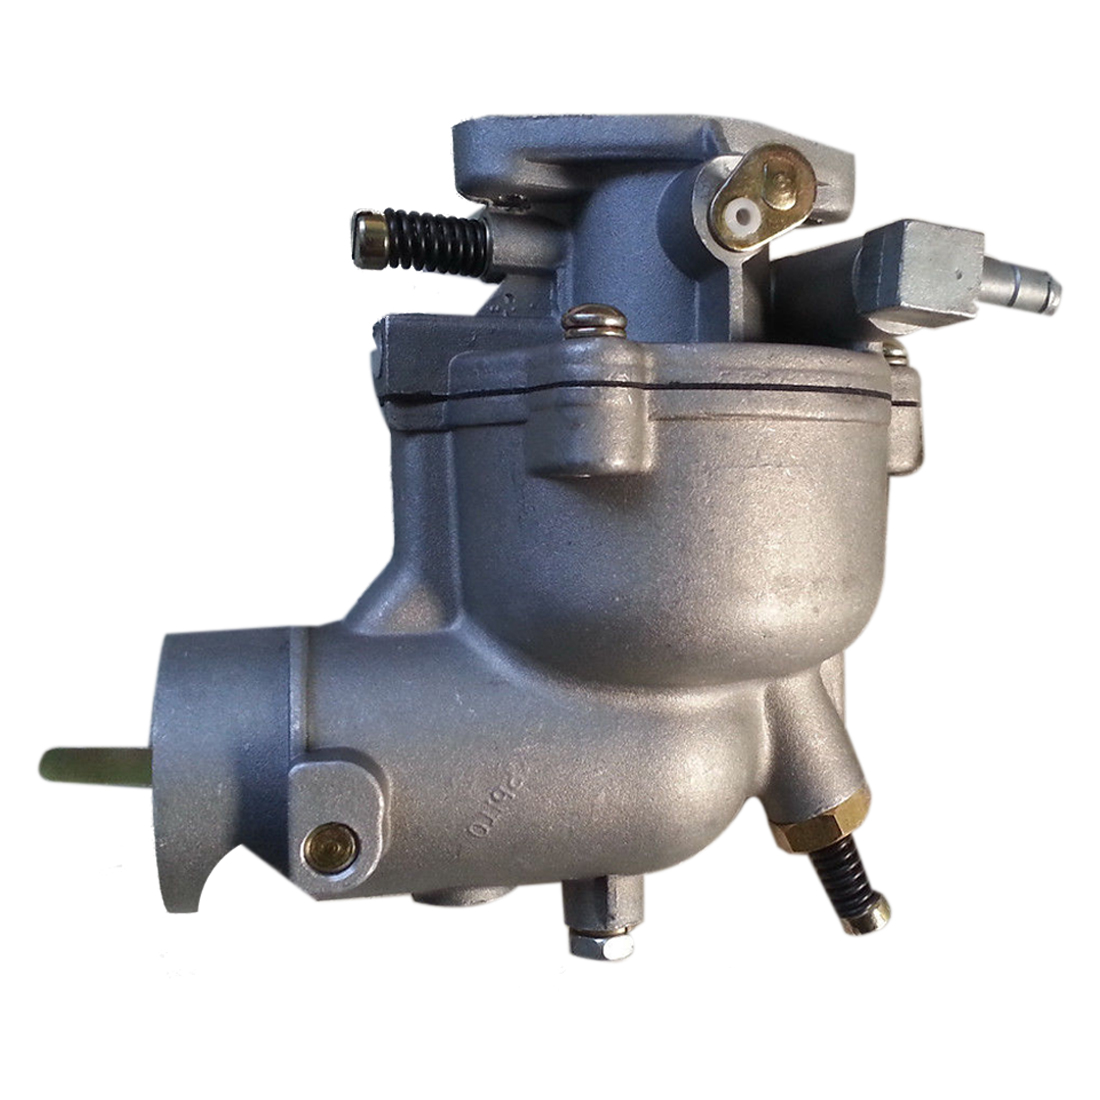 New Carburetor for BRIGGS STRATTON 390323 394228 7HP 8HP 9 HP Engine Carb ~  Best Deal July 2019